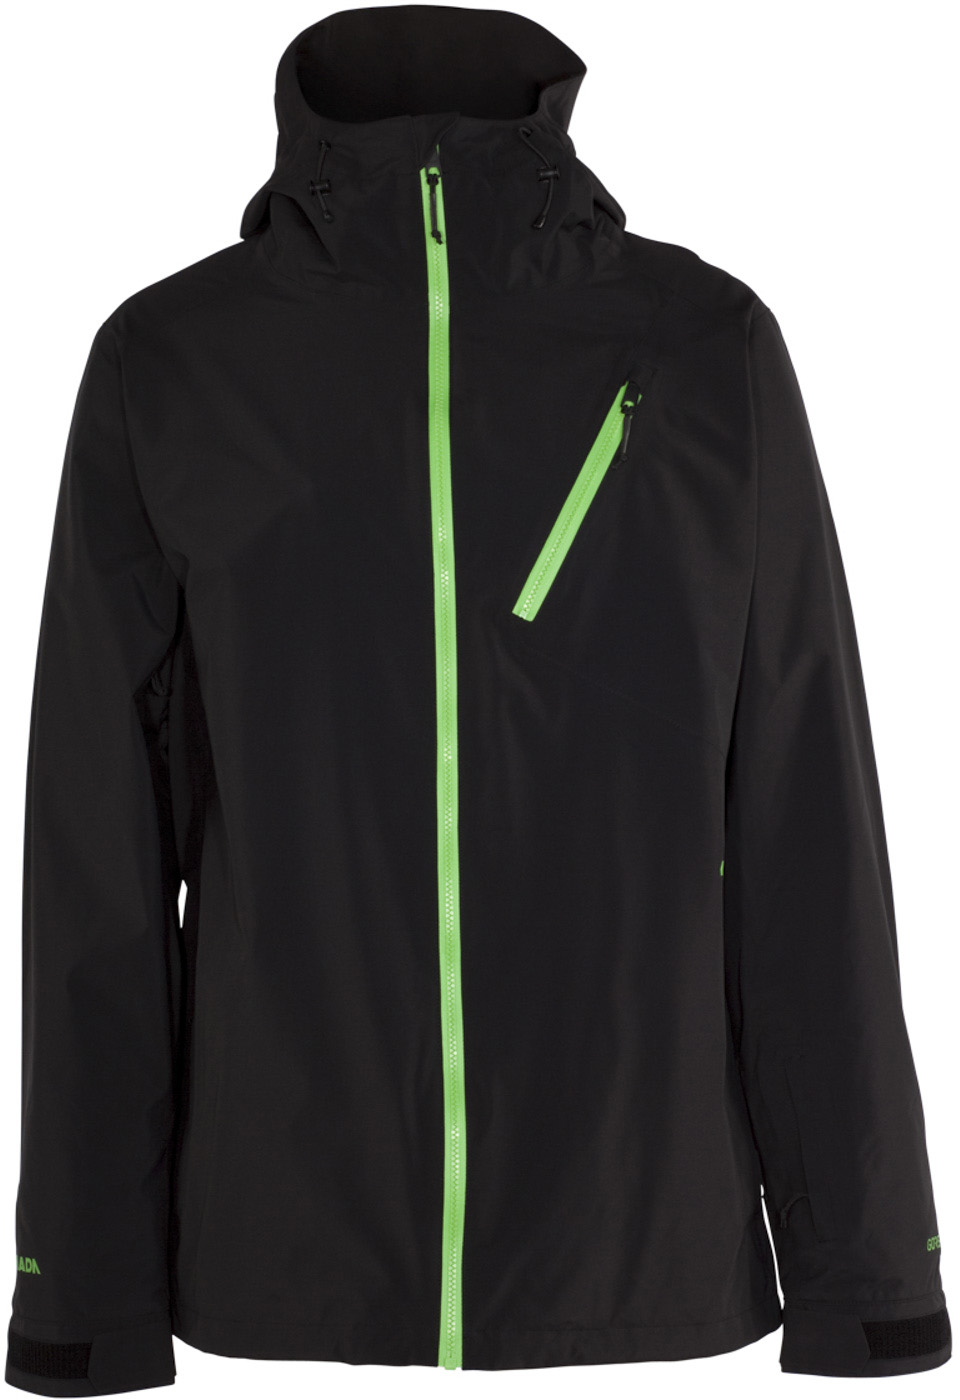 bunda CHAPTER GORE-TEX JACKET black